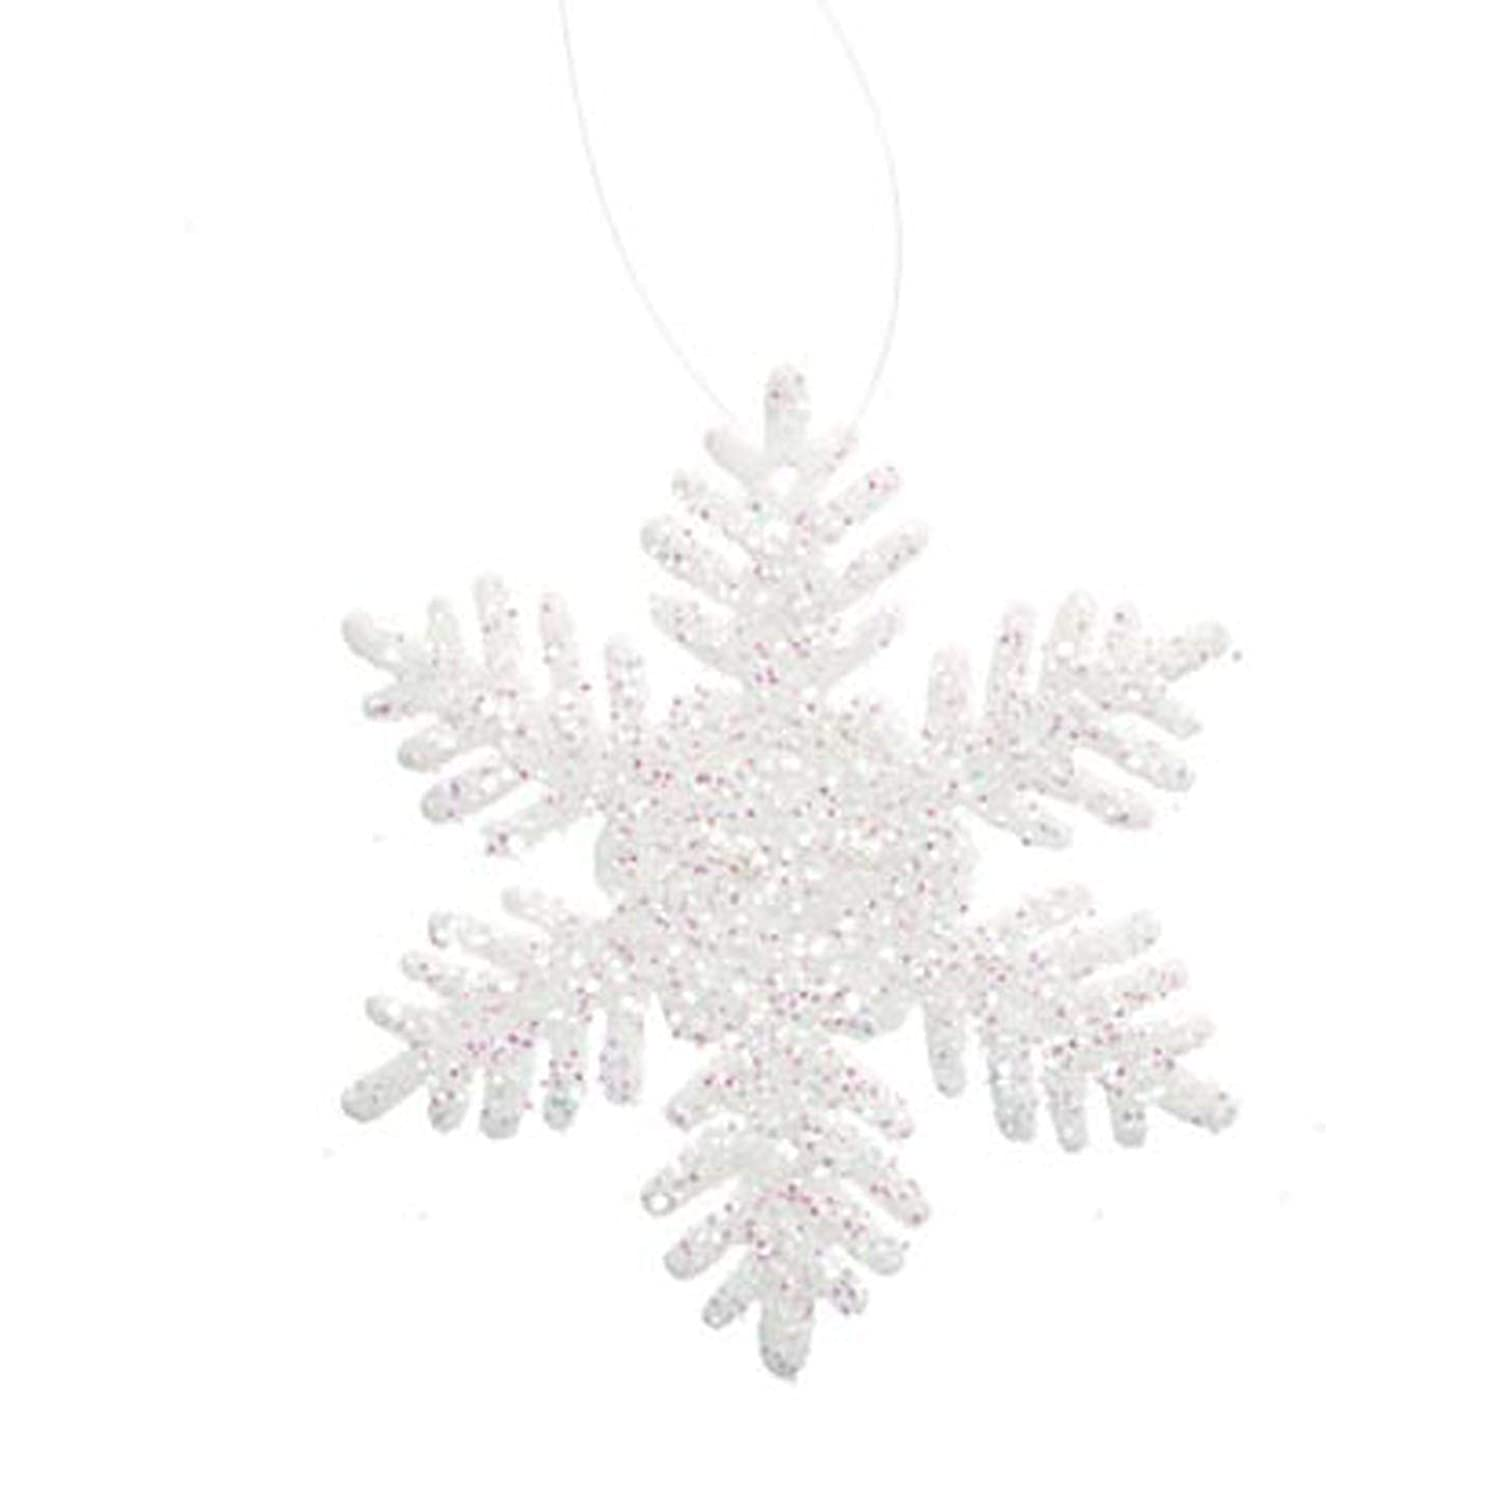 Bulk Buy: Darice DIY Crafts Glitter Snowflake White 2 inches 12 pieces (3-Pack) 2469-35